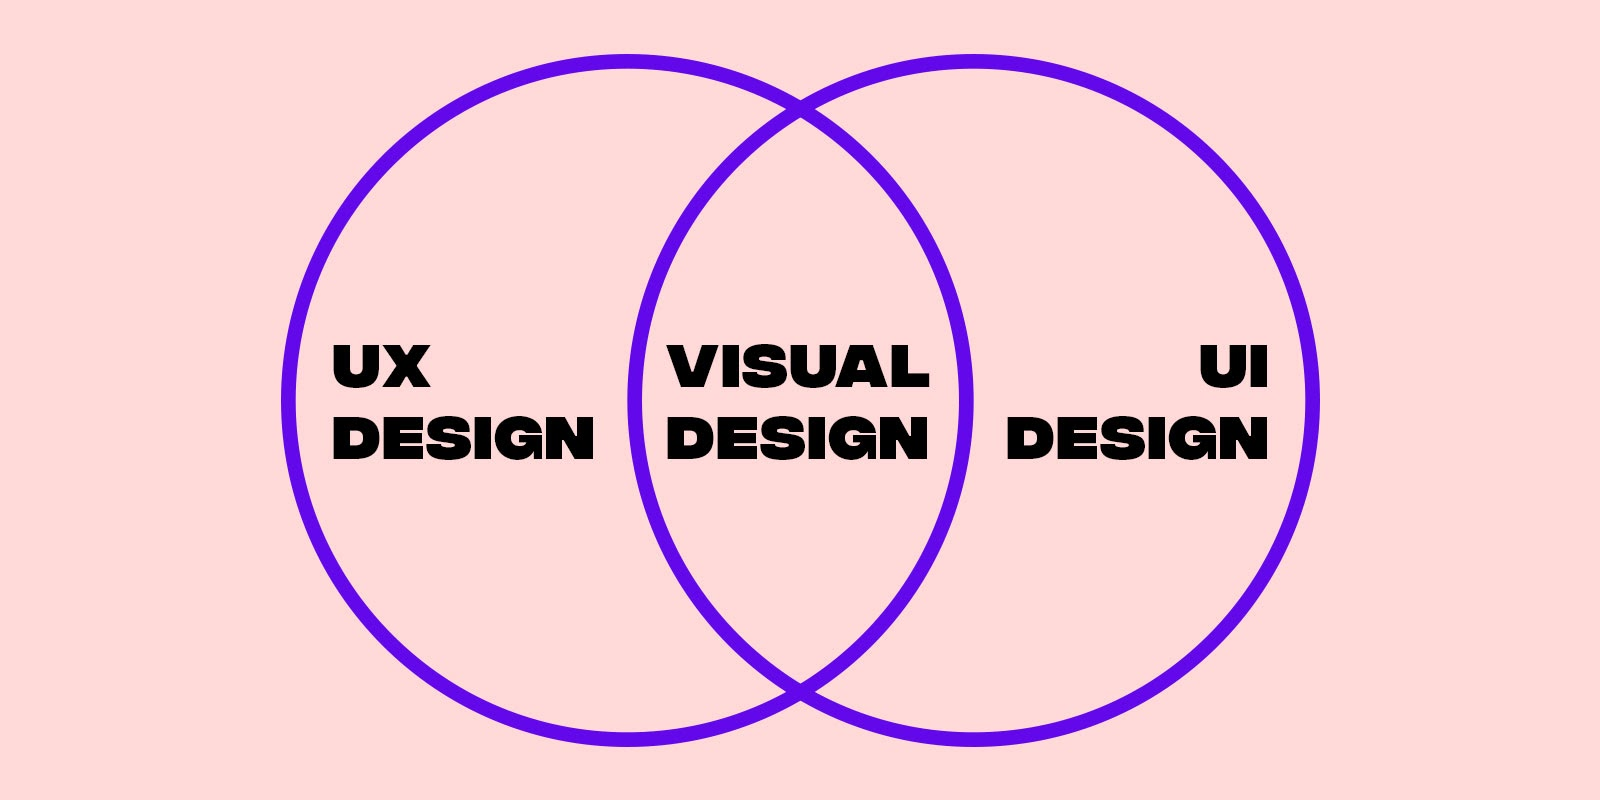 Visual design is a hybrid of UX and UI design